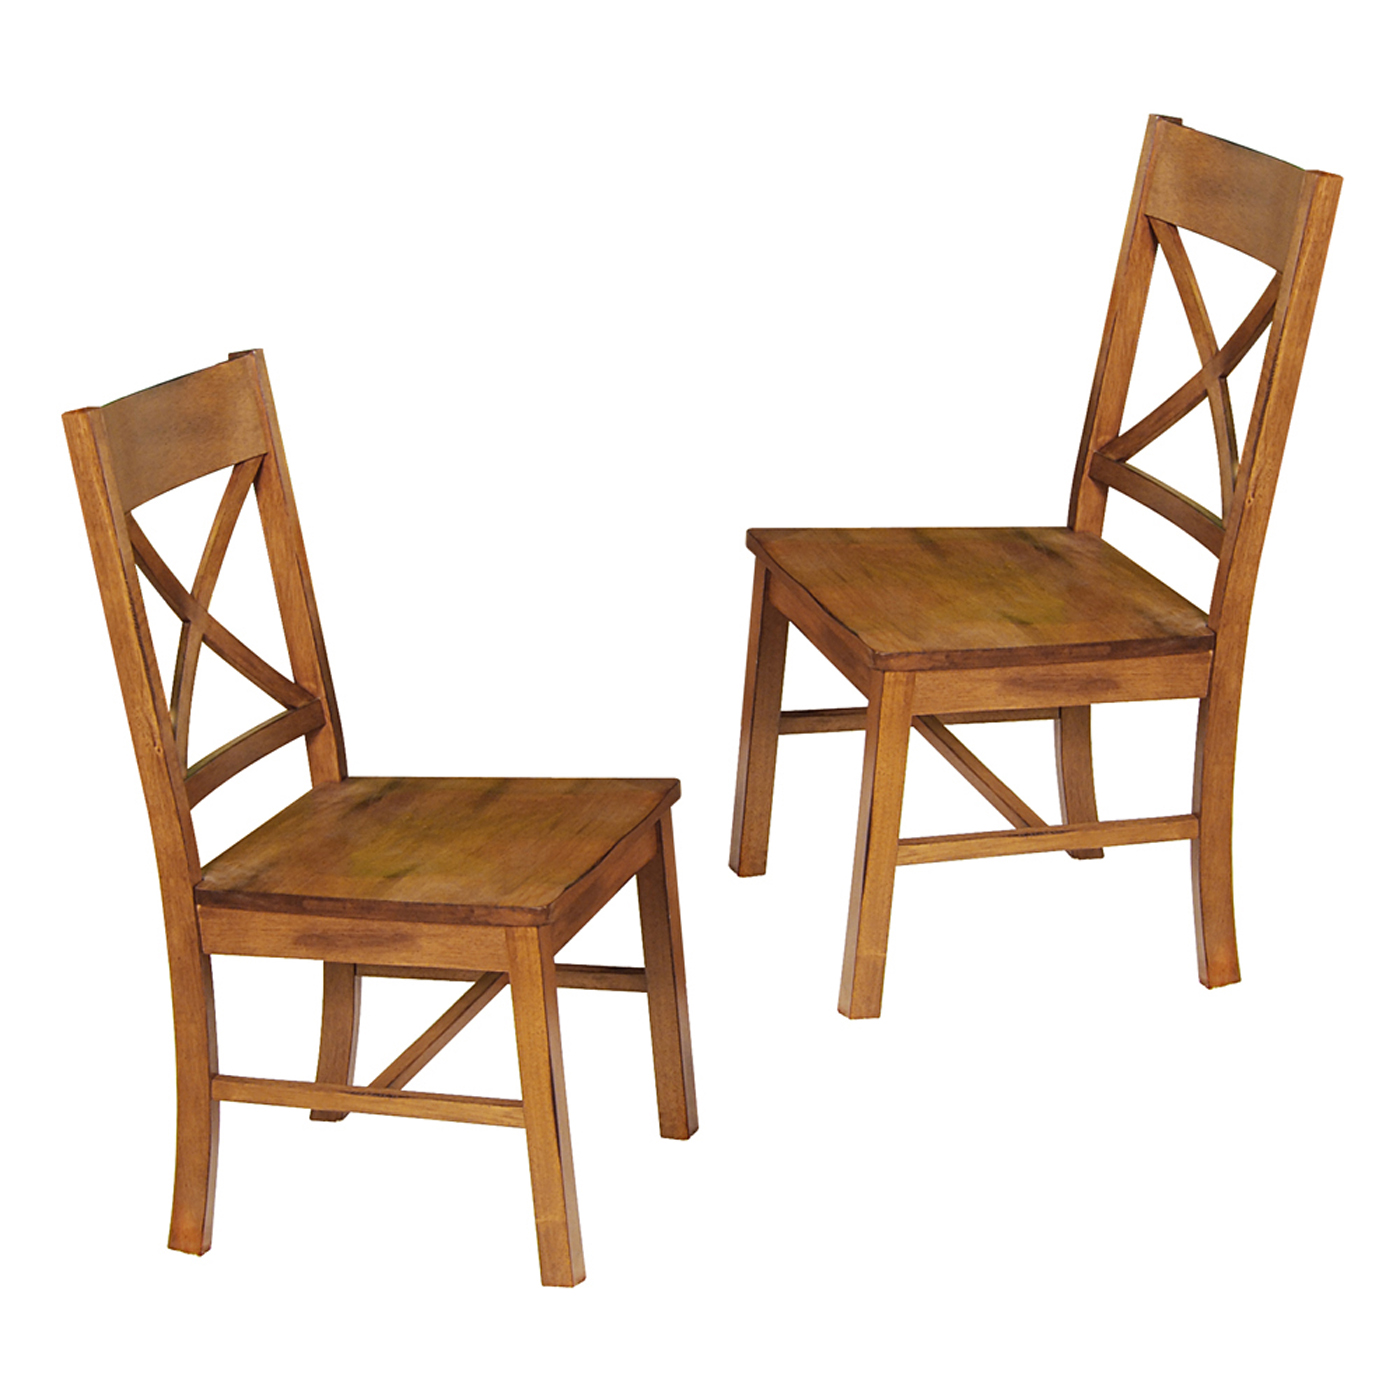 Wood Dining Chairs Antique Brown Set Of 2 In Dining Chairs